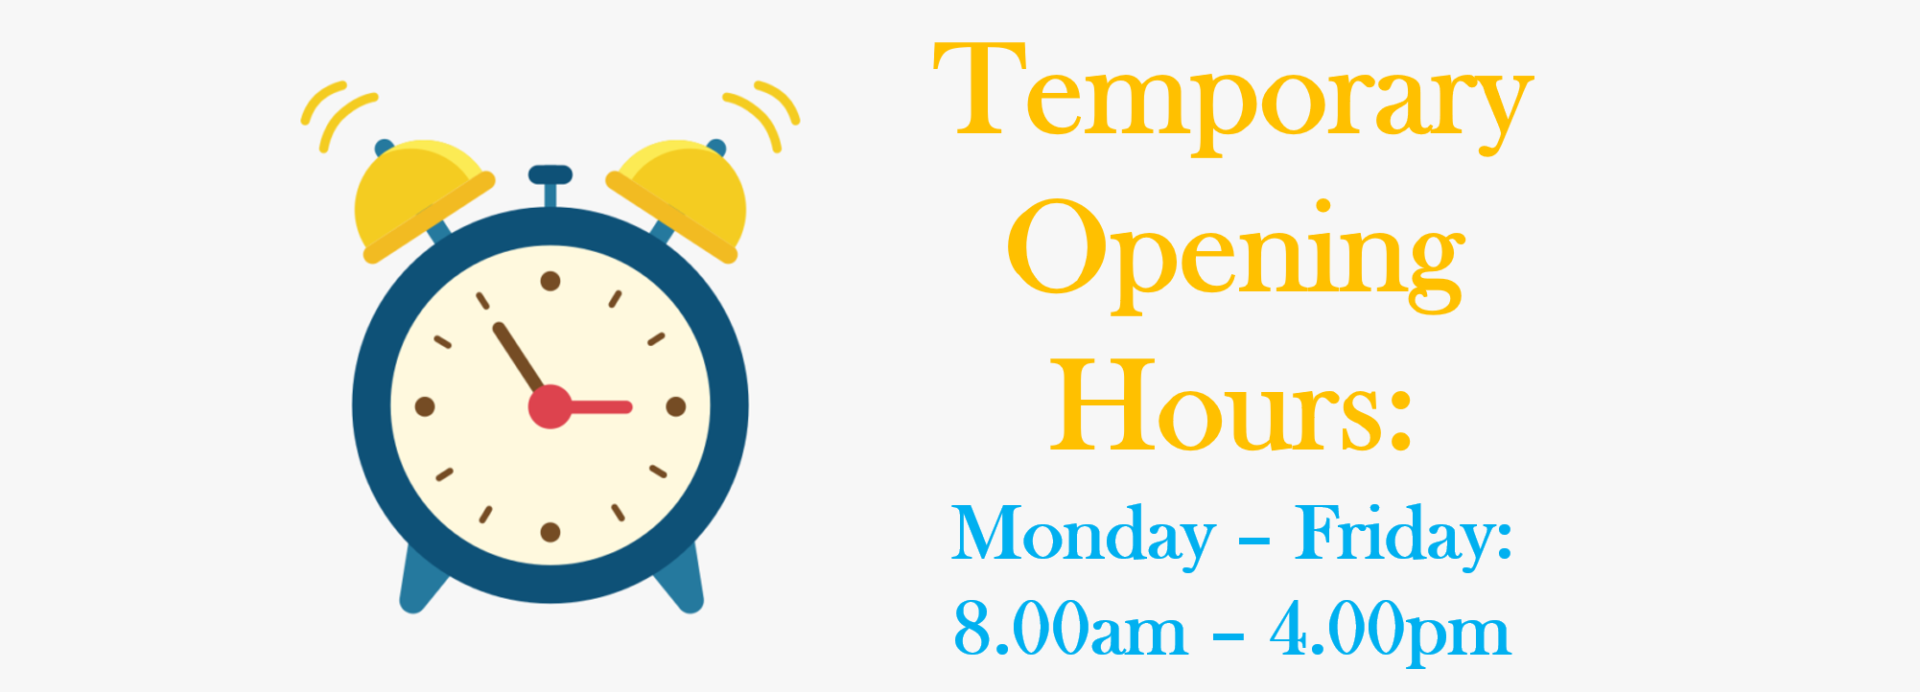 Temporary Opening Hours 8.00am – 4.00pm